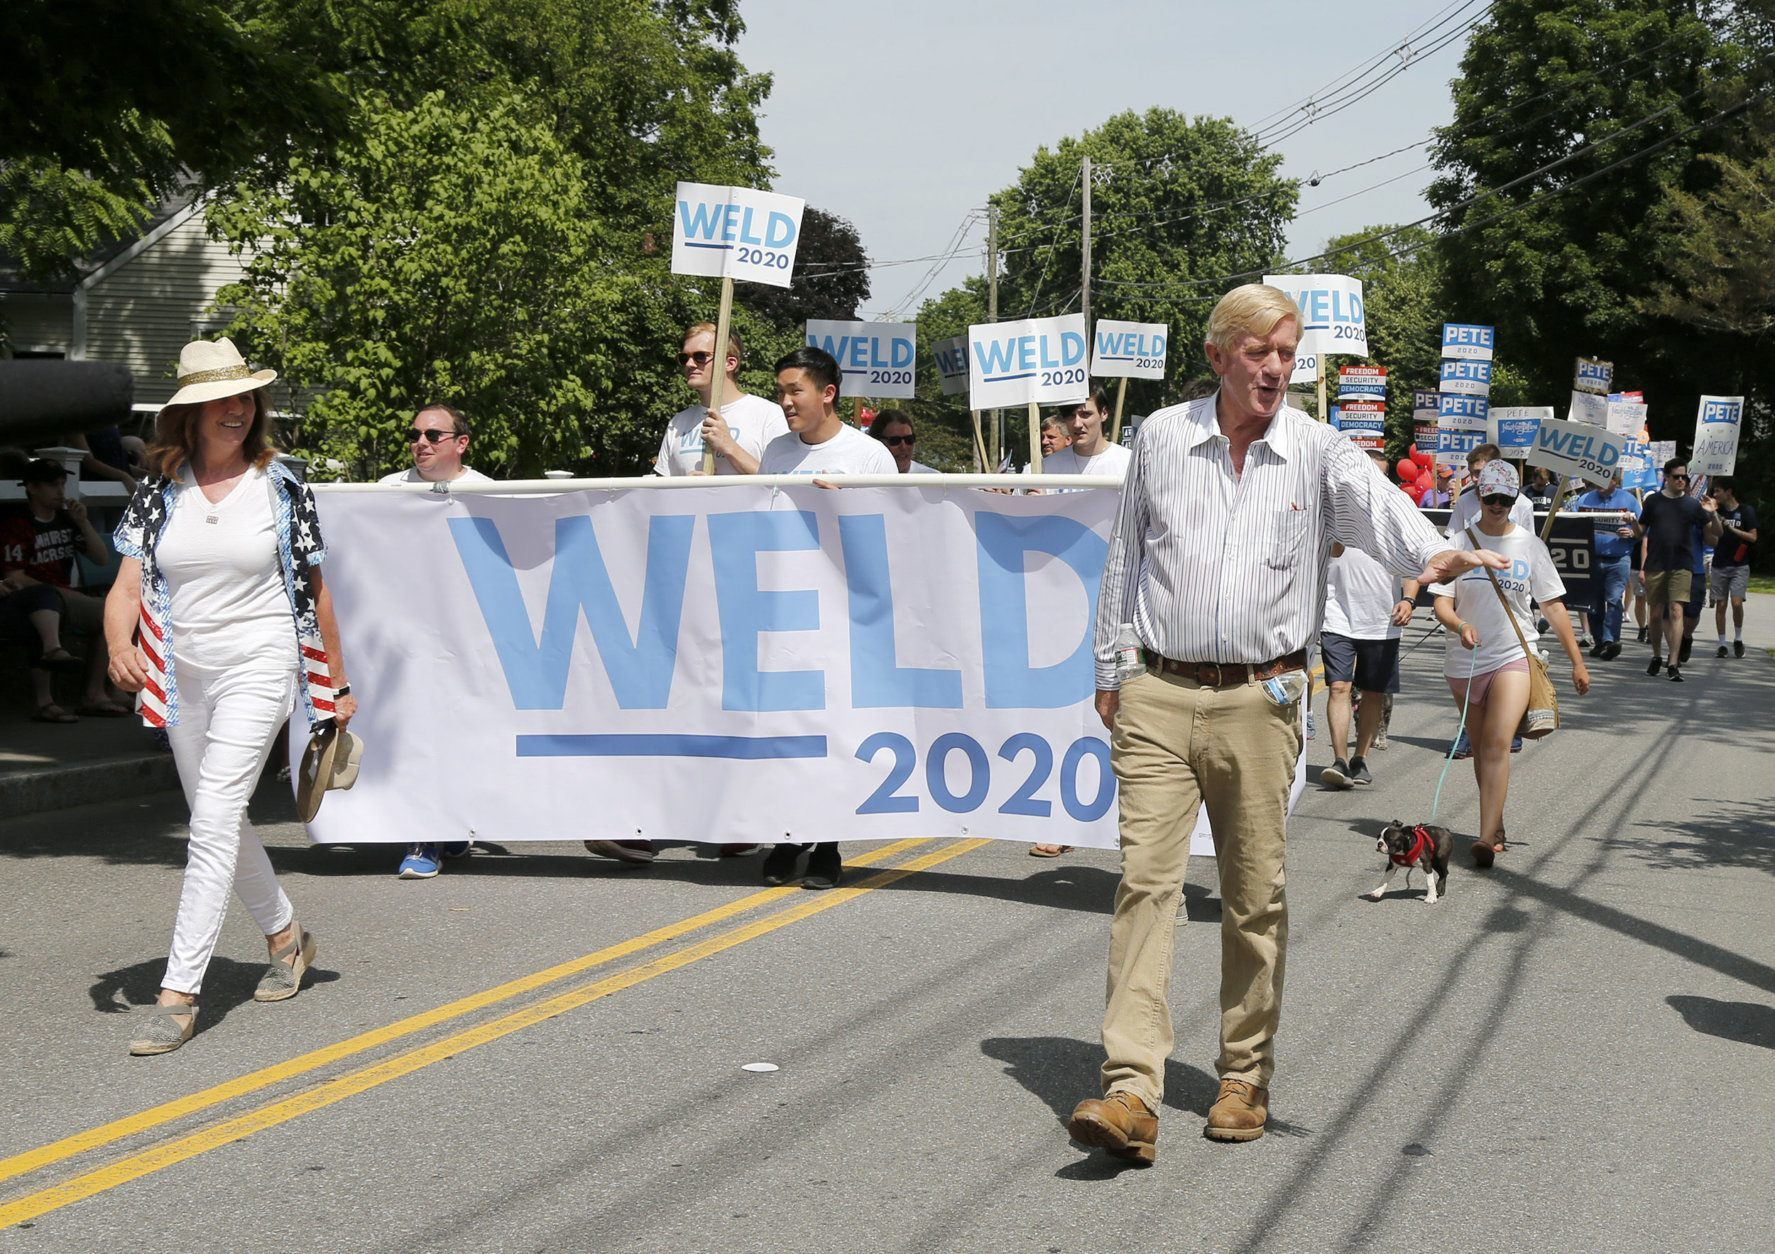 Republican presidential candidate former Massachusetts Gov. William Weld waves to potential supporters as he walks along the route with his wife Leslie Marshall during the Fourth of July Parade, Thursday, July 4, 2019, in Amherst. (AP Photo/Mary Schwalm)